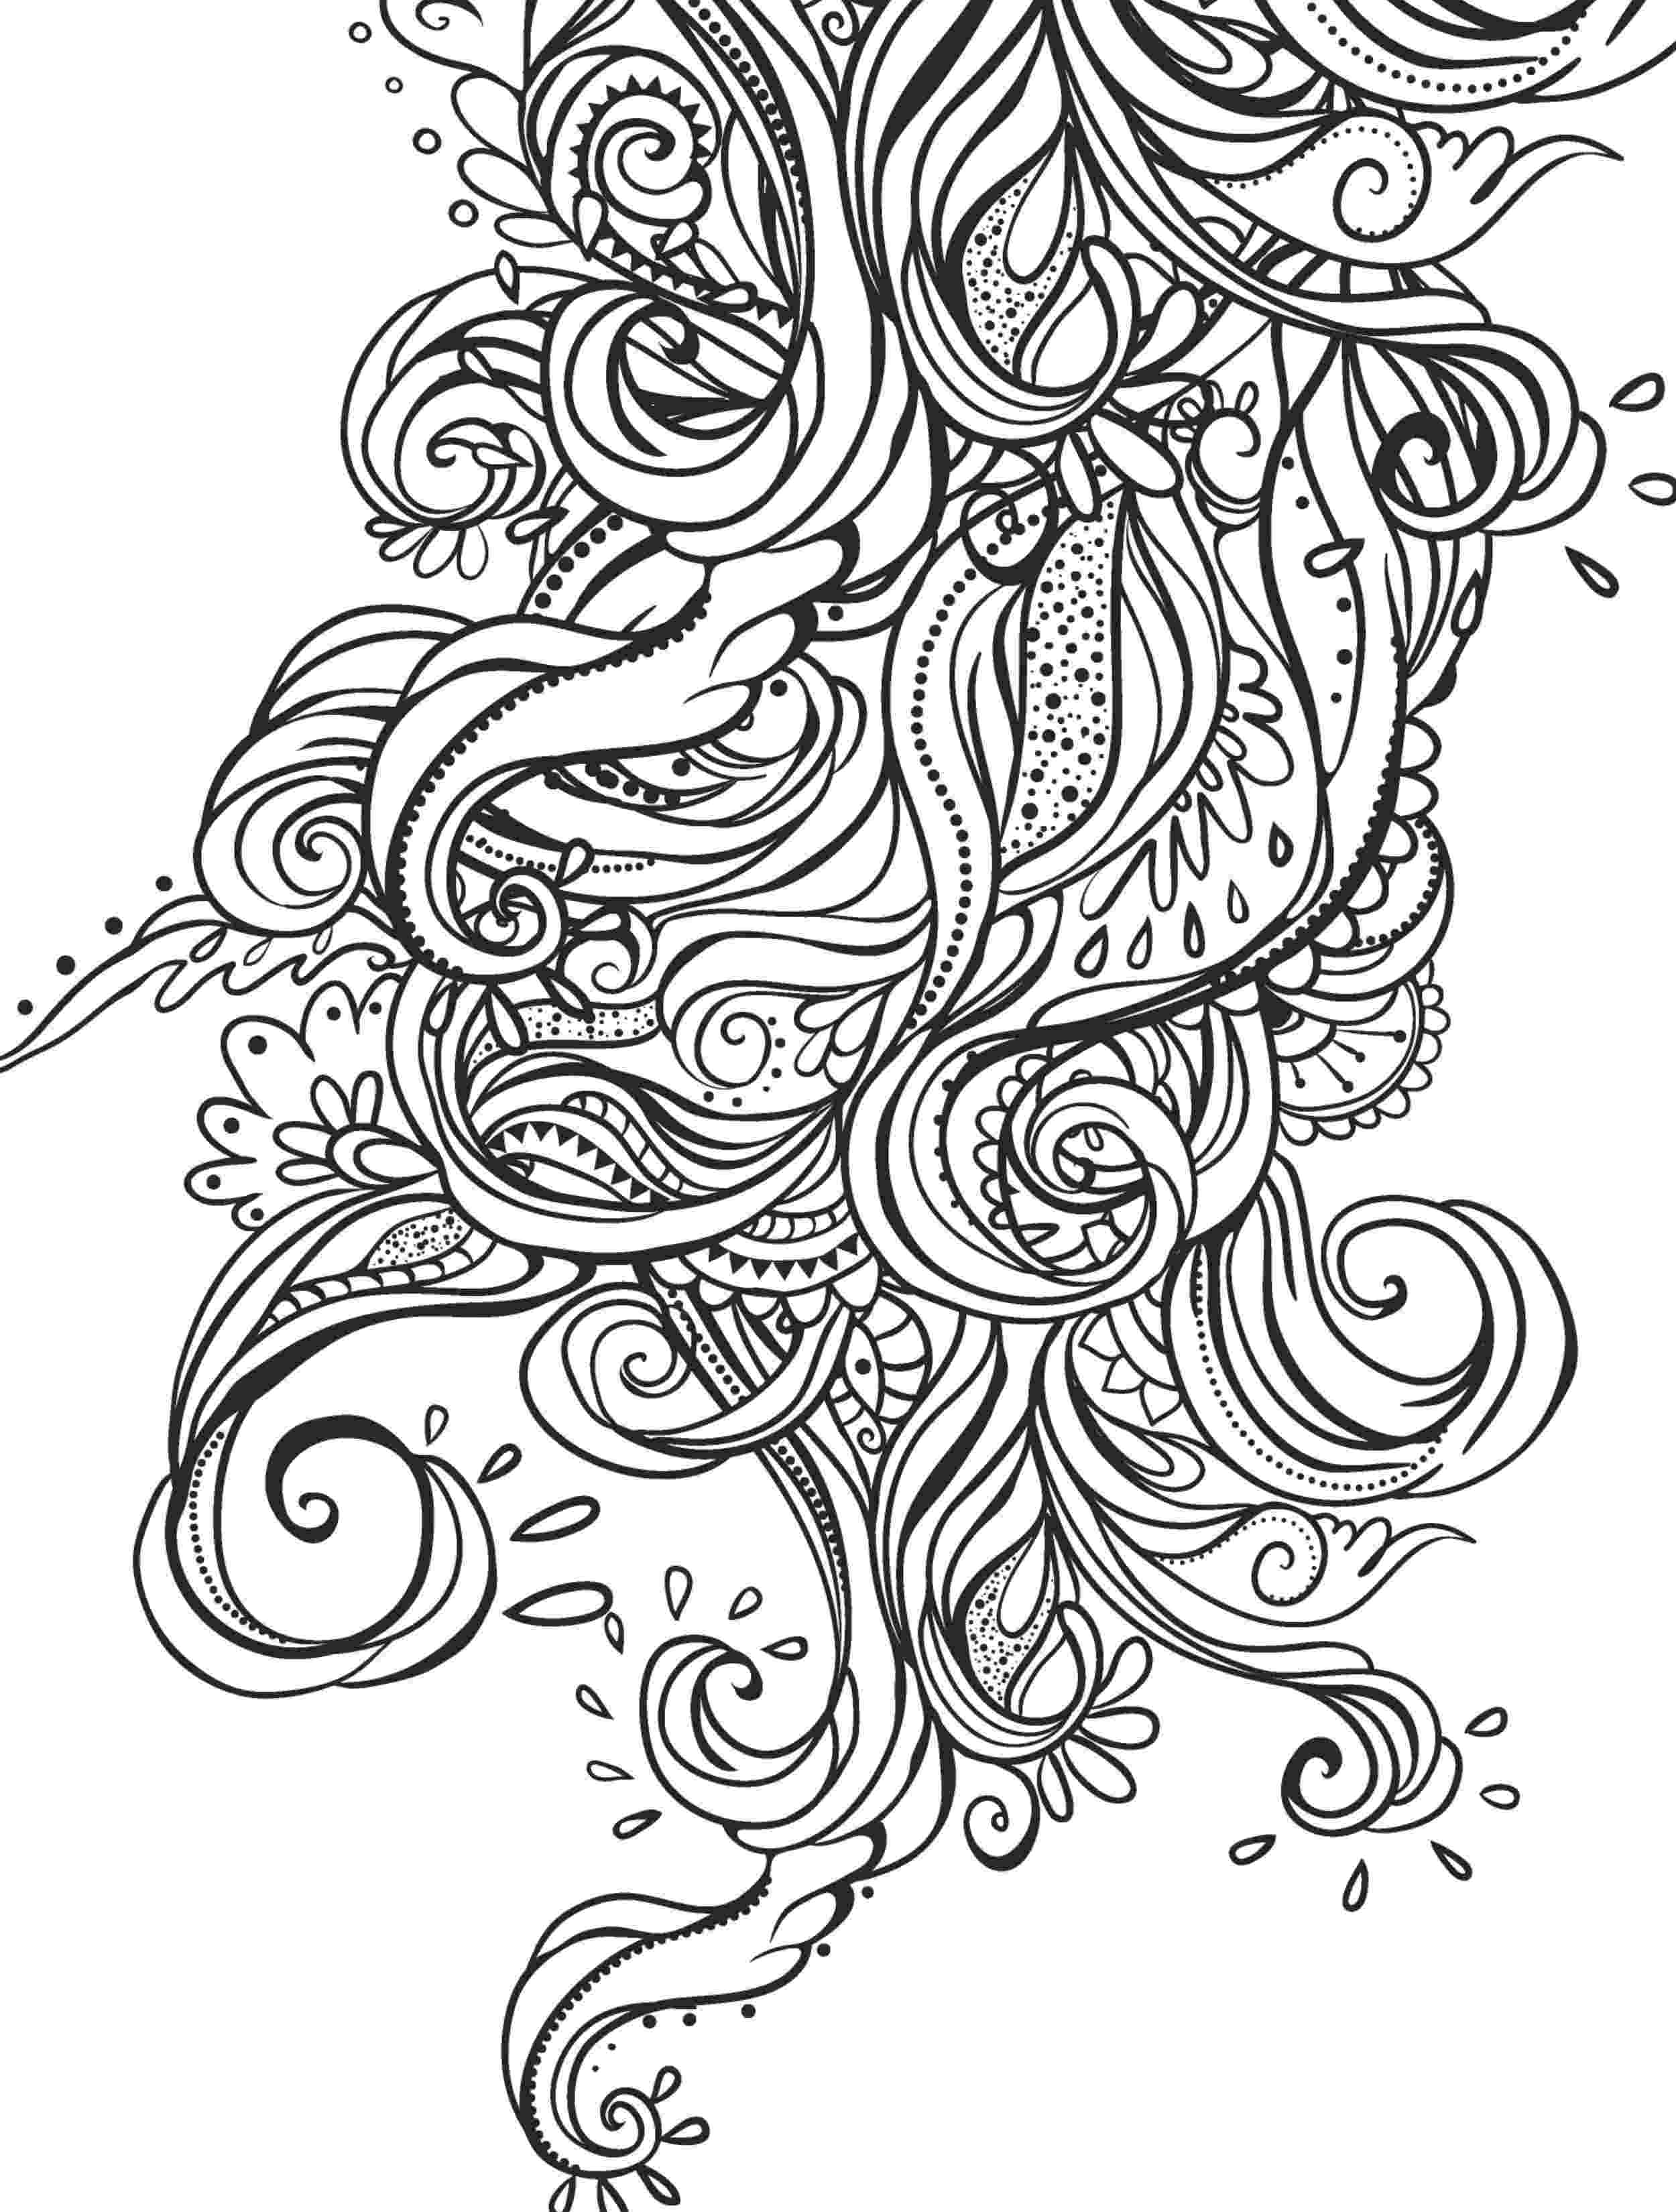 coloring book for adults beautiful day pretty girl with flowers coloring page recolor app day beautiful coloring book adults for